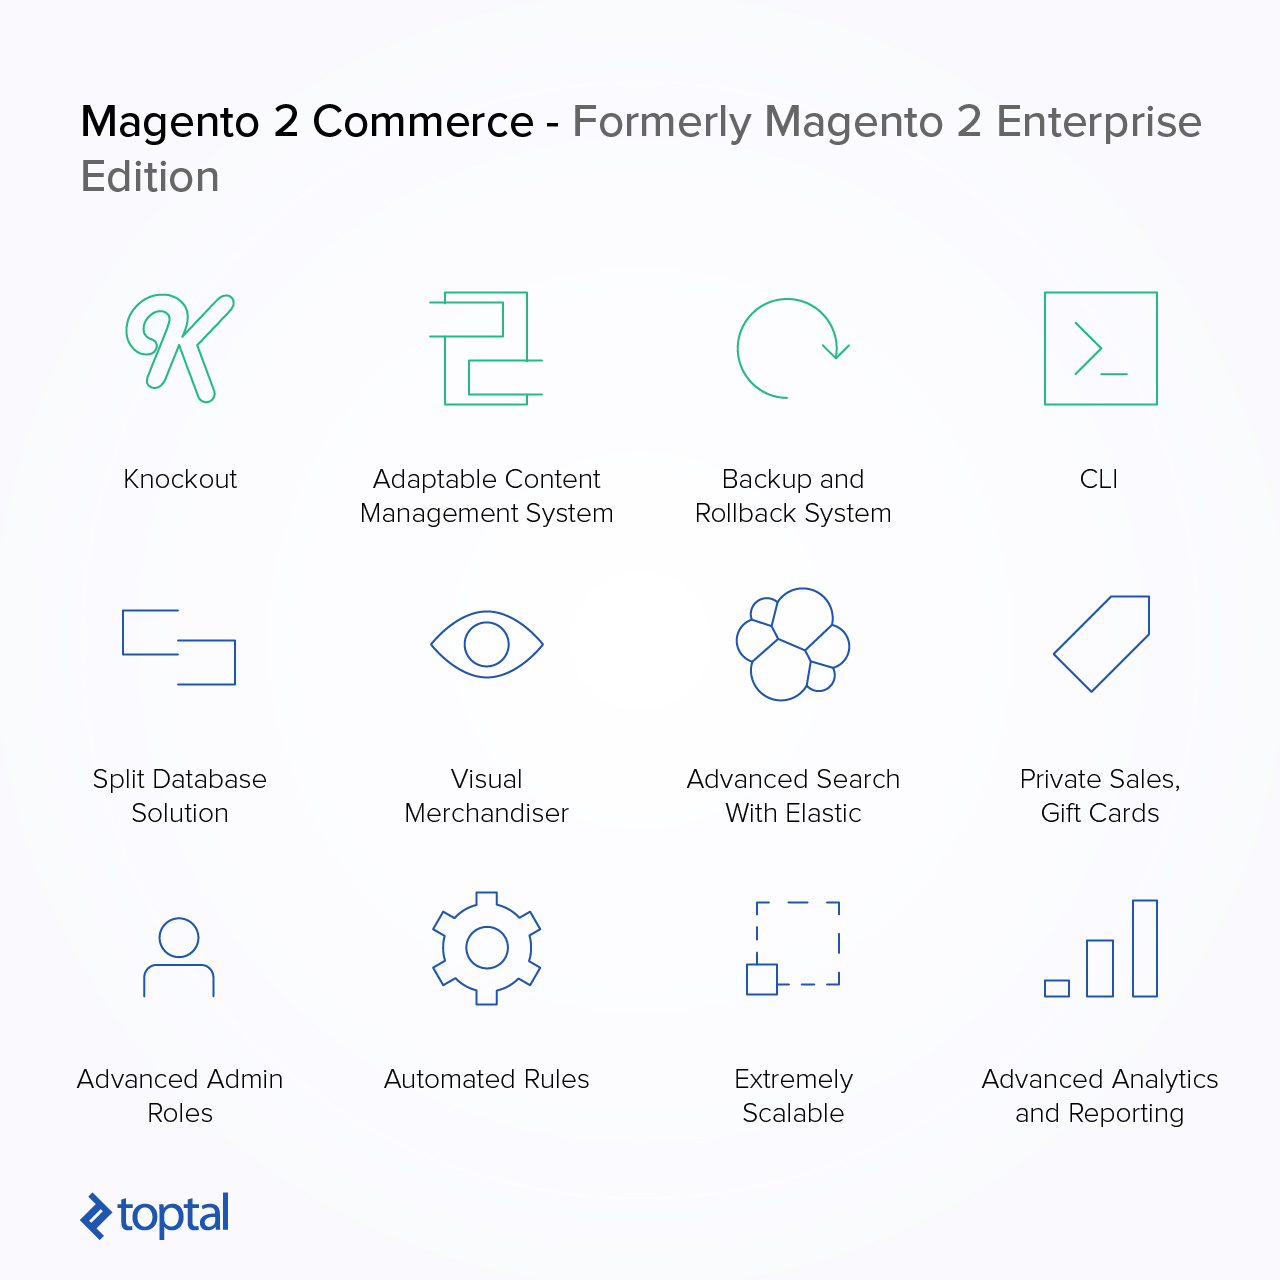 Magento Commerce covers some high-end features not found in Magento Open Source, but at the same time, some Magento Open Source features are more enterprise-ready than you might expect.